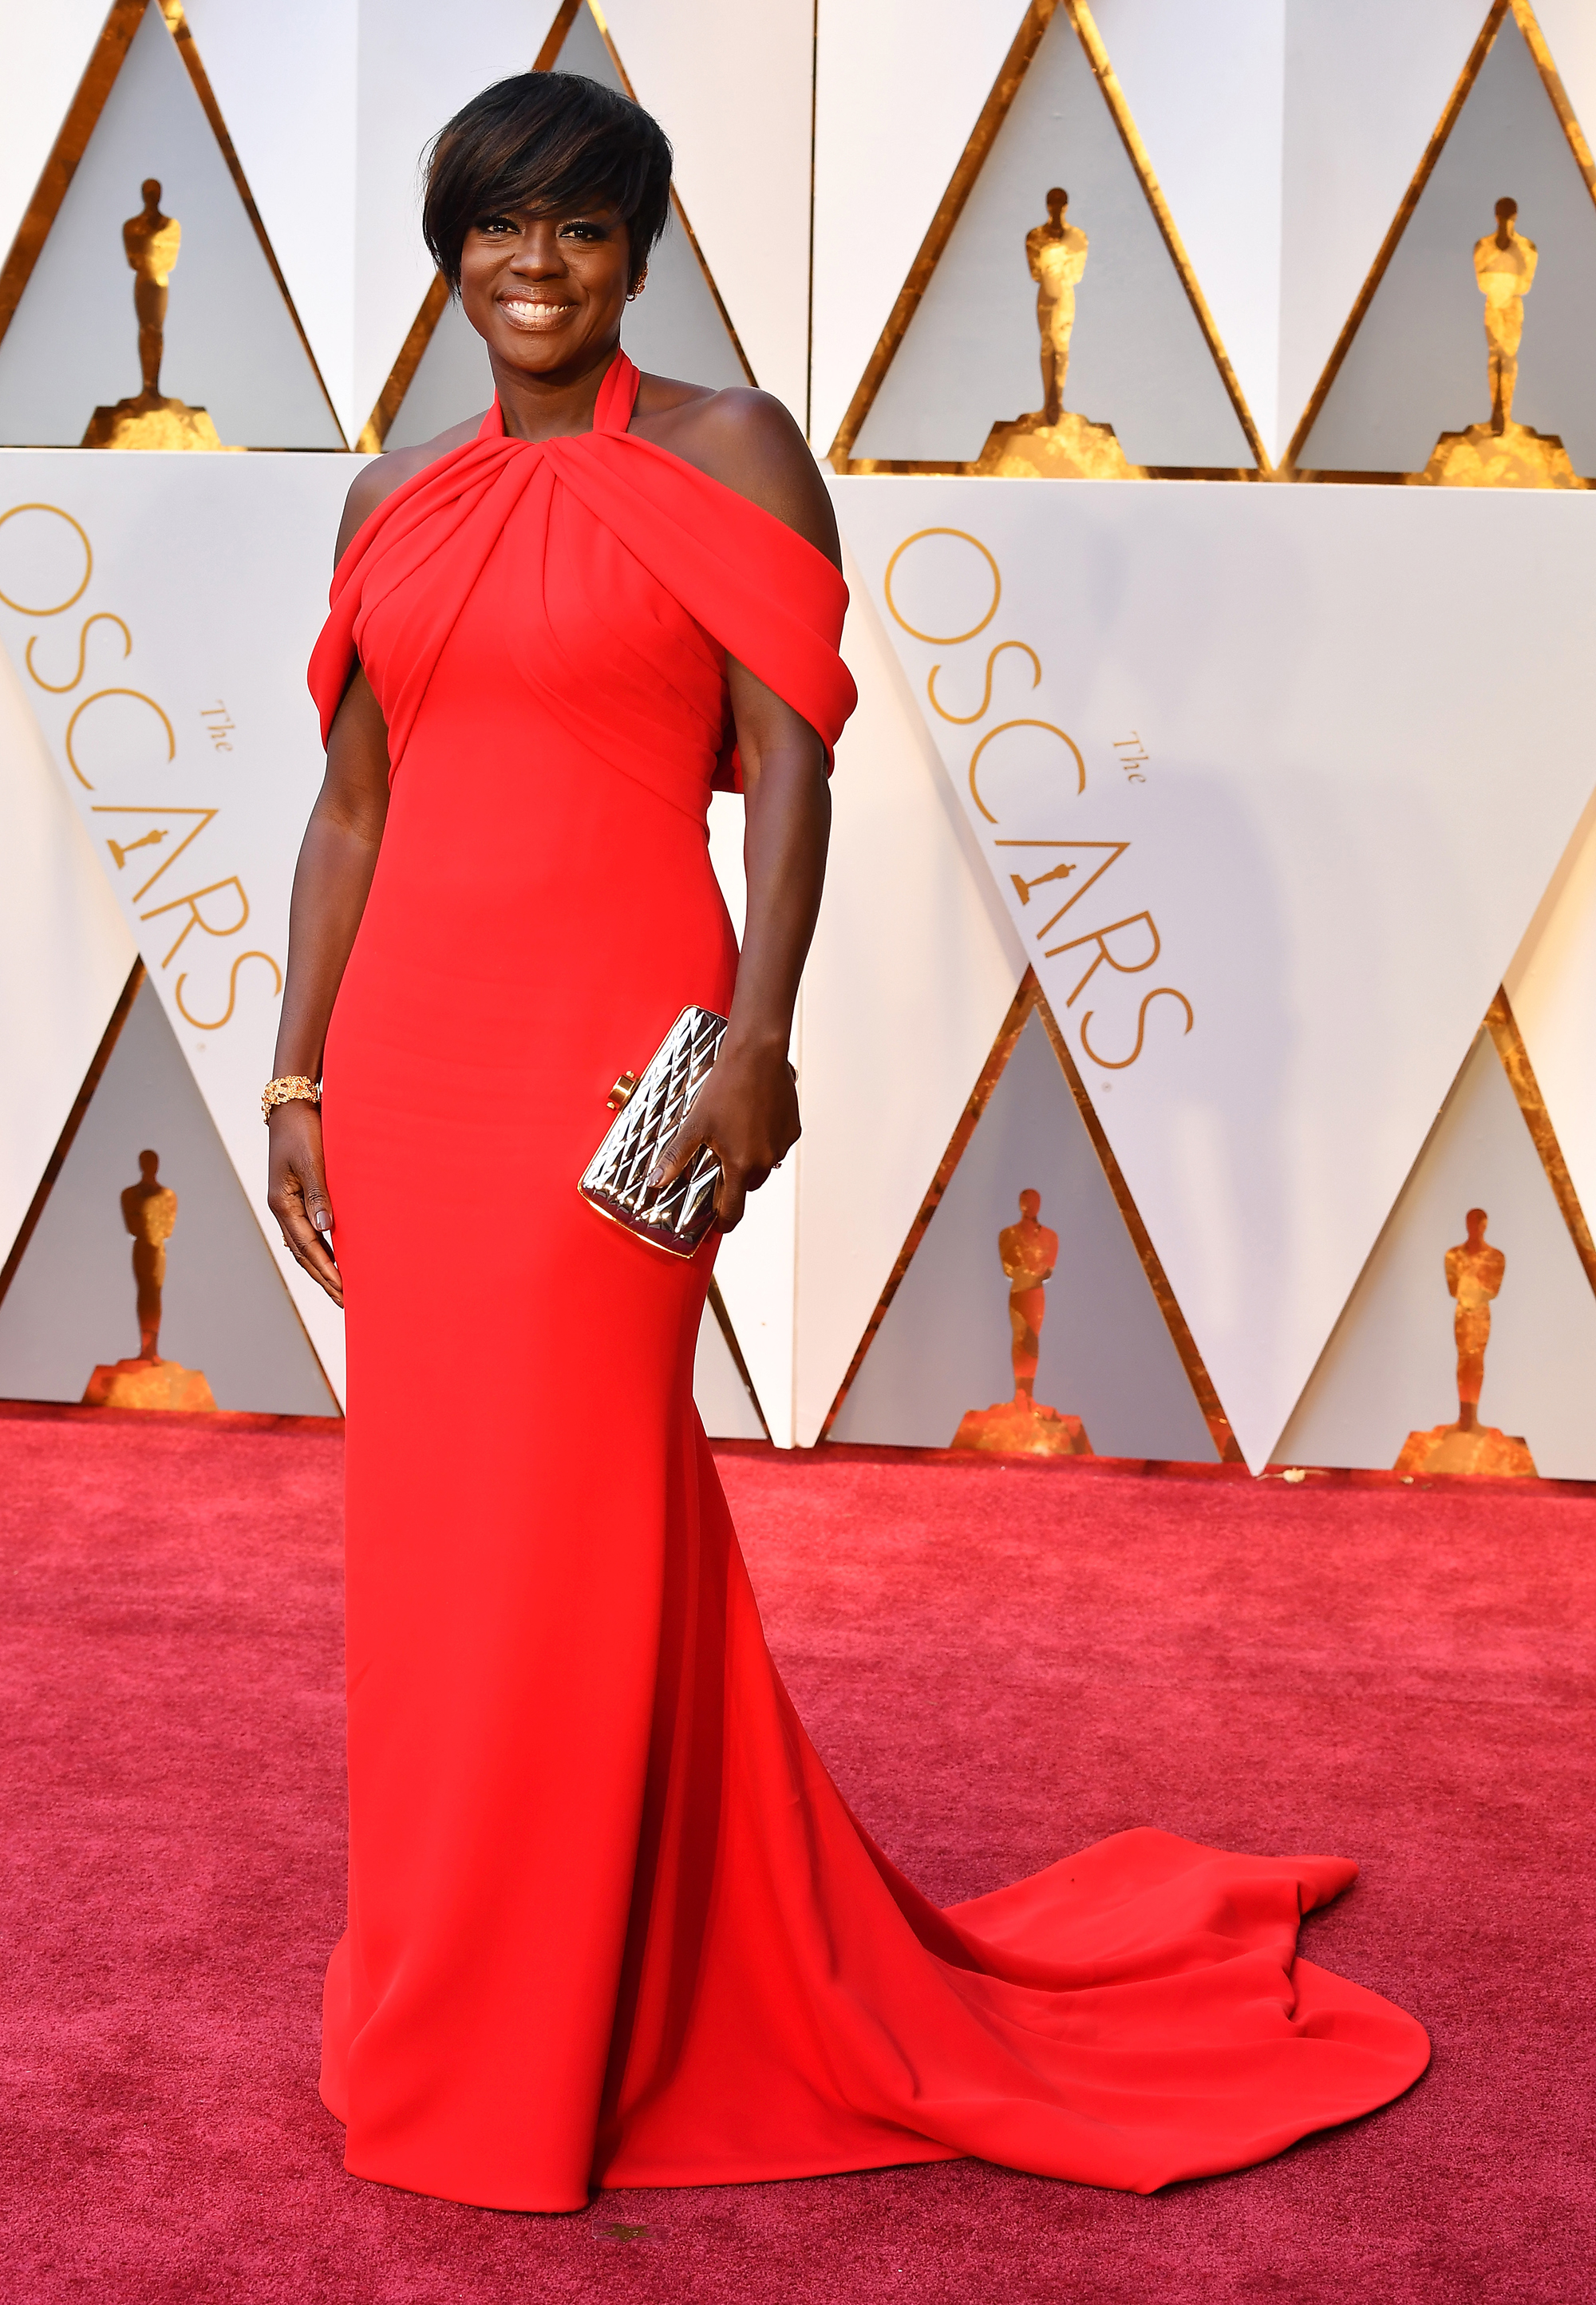 Viola Davis on the red carpet for the 89th Oscars, on Feb. 26, 2017 in Hollywood, Calif.